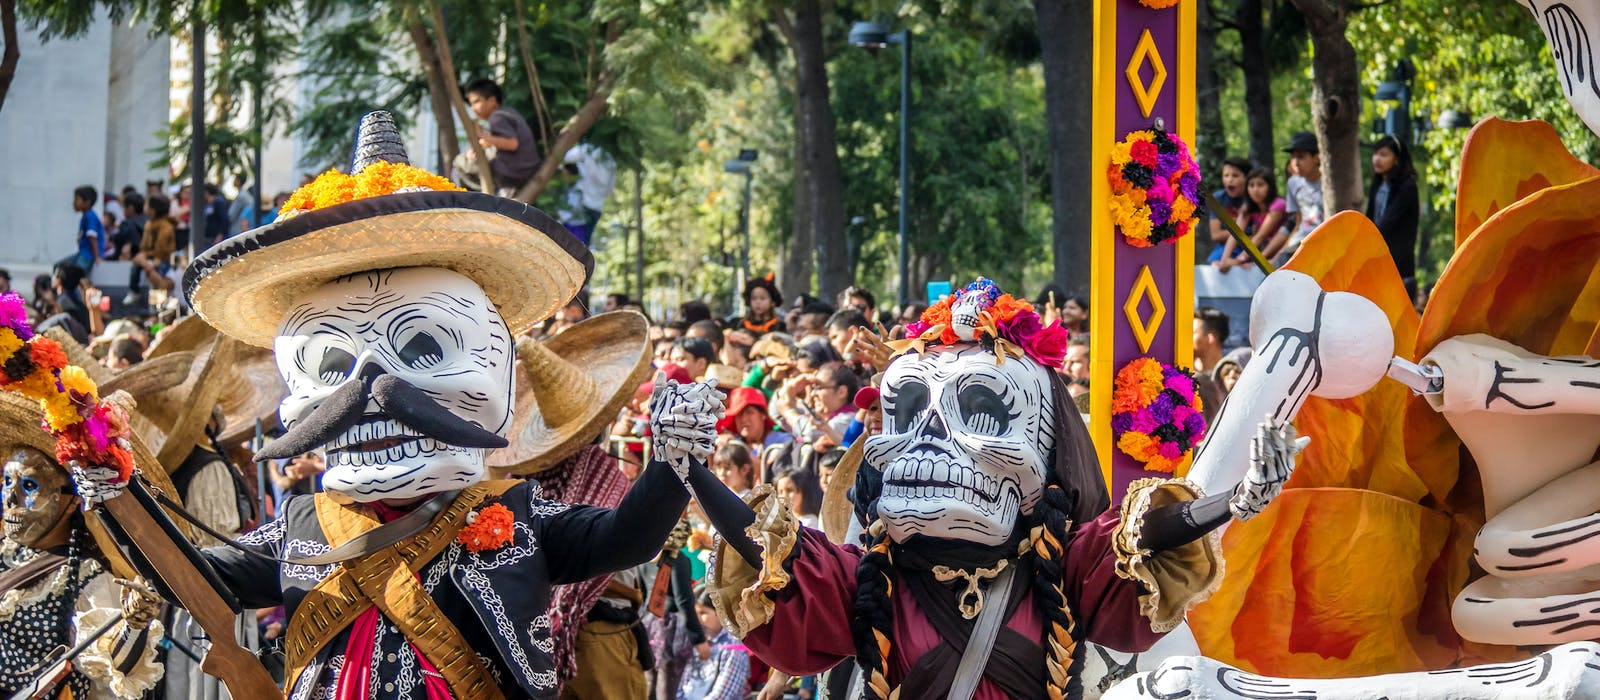 muertos dia mexico dead day states city celebrated united world really cities festivities celebration grandi diego shutterstock eye parts